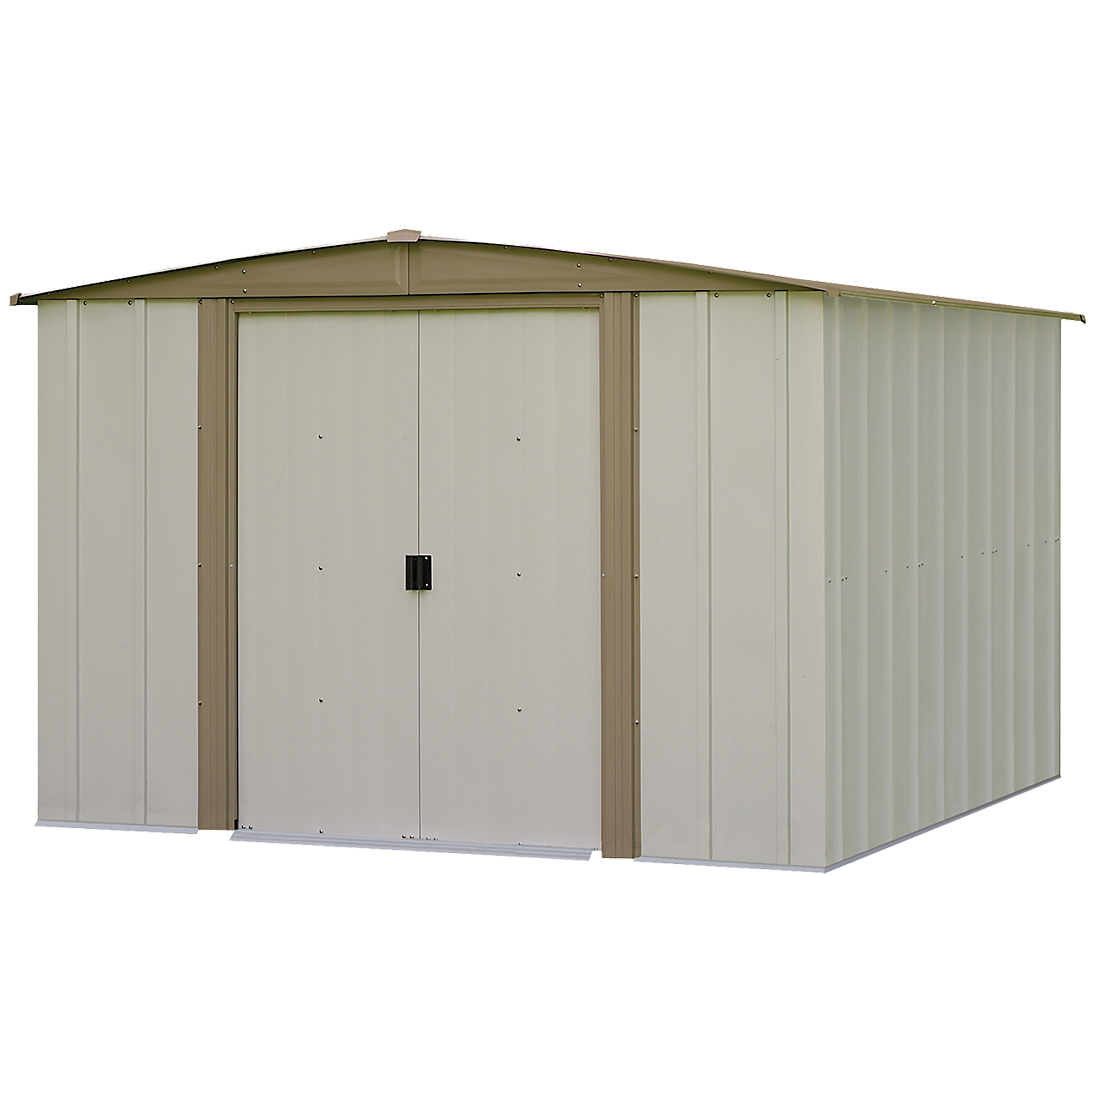 Bedford 8 x 8 ft. Shed